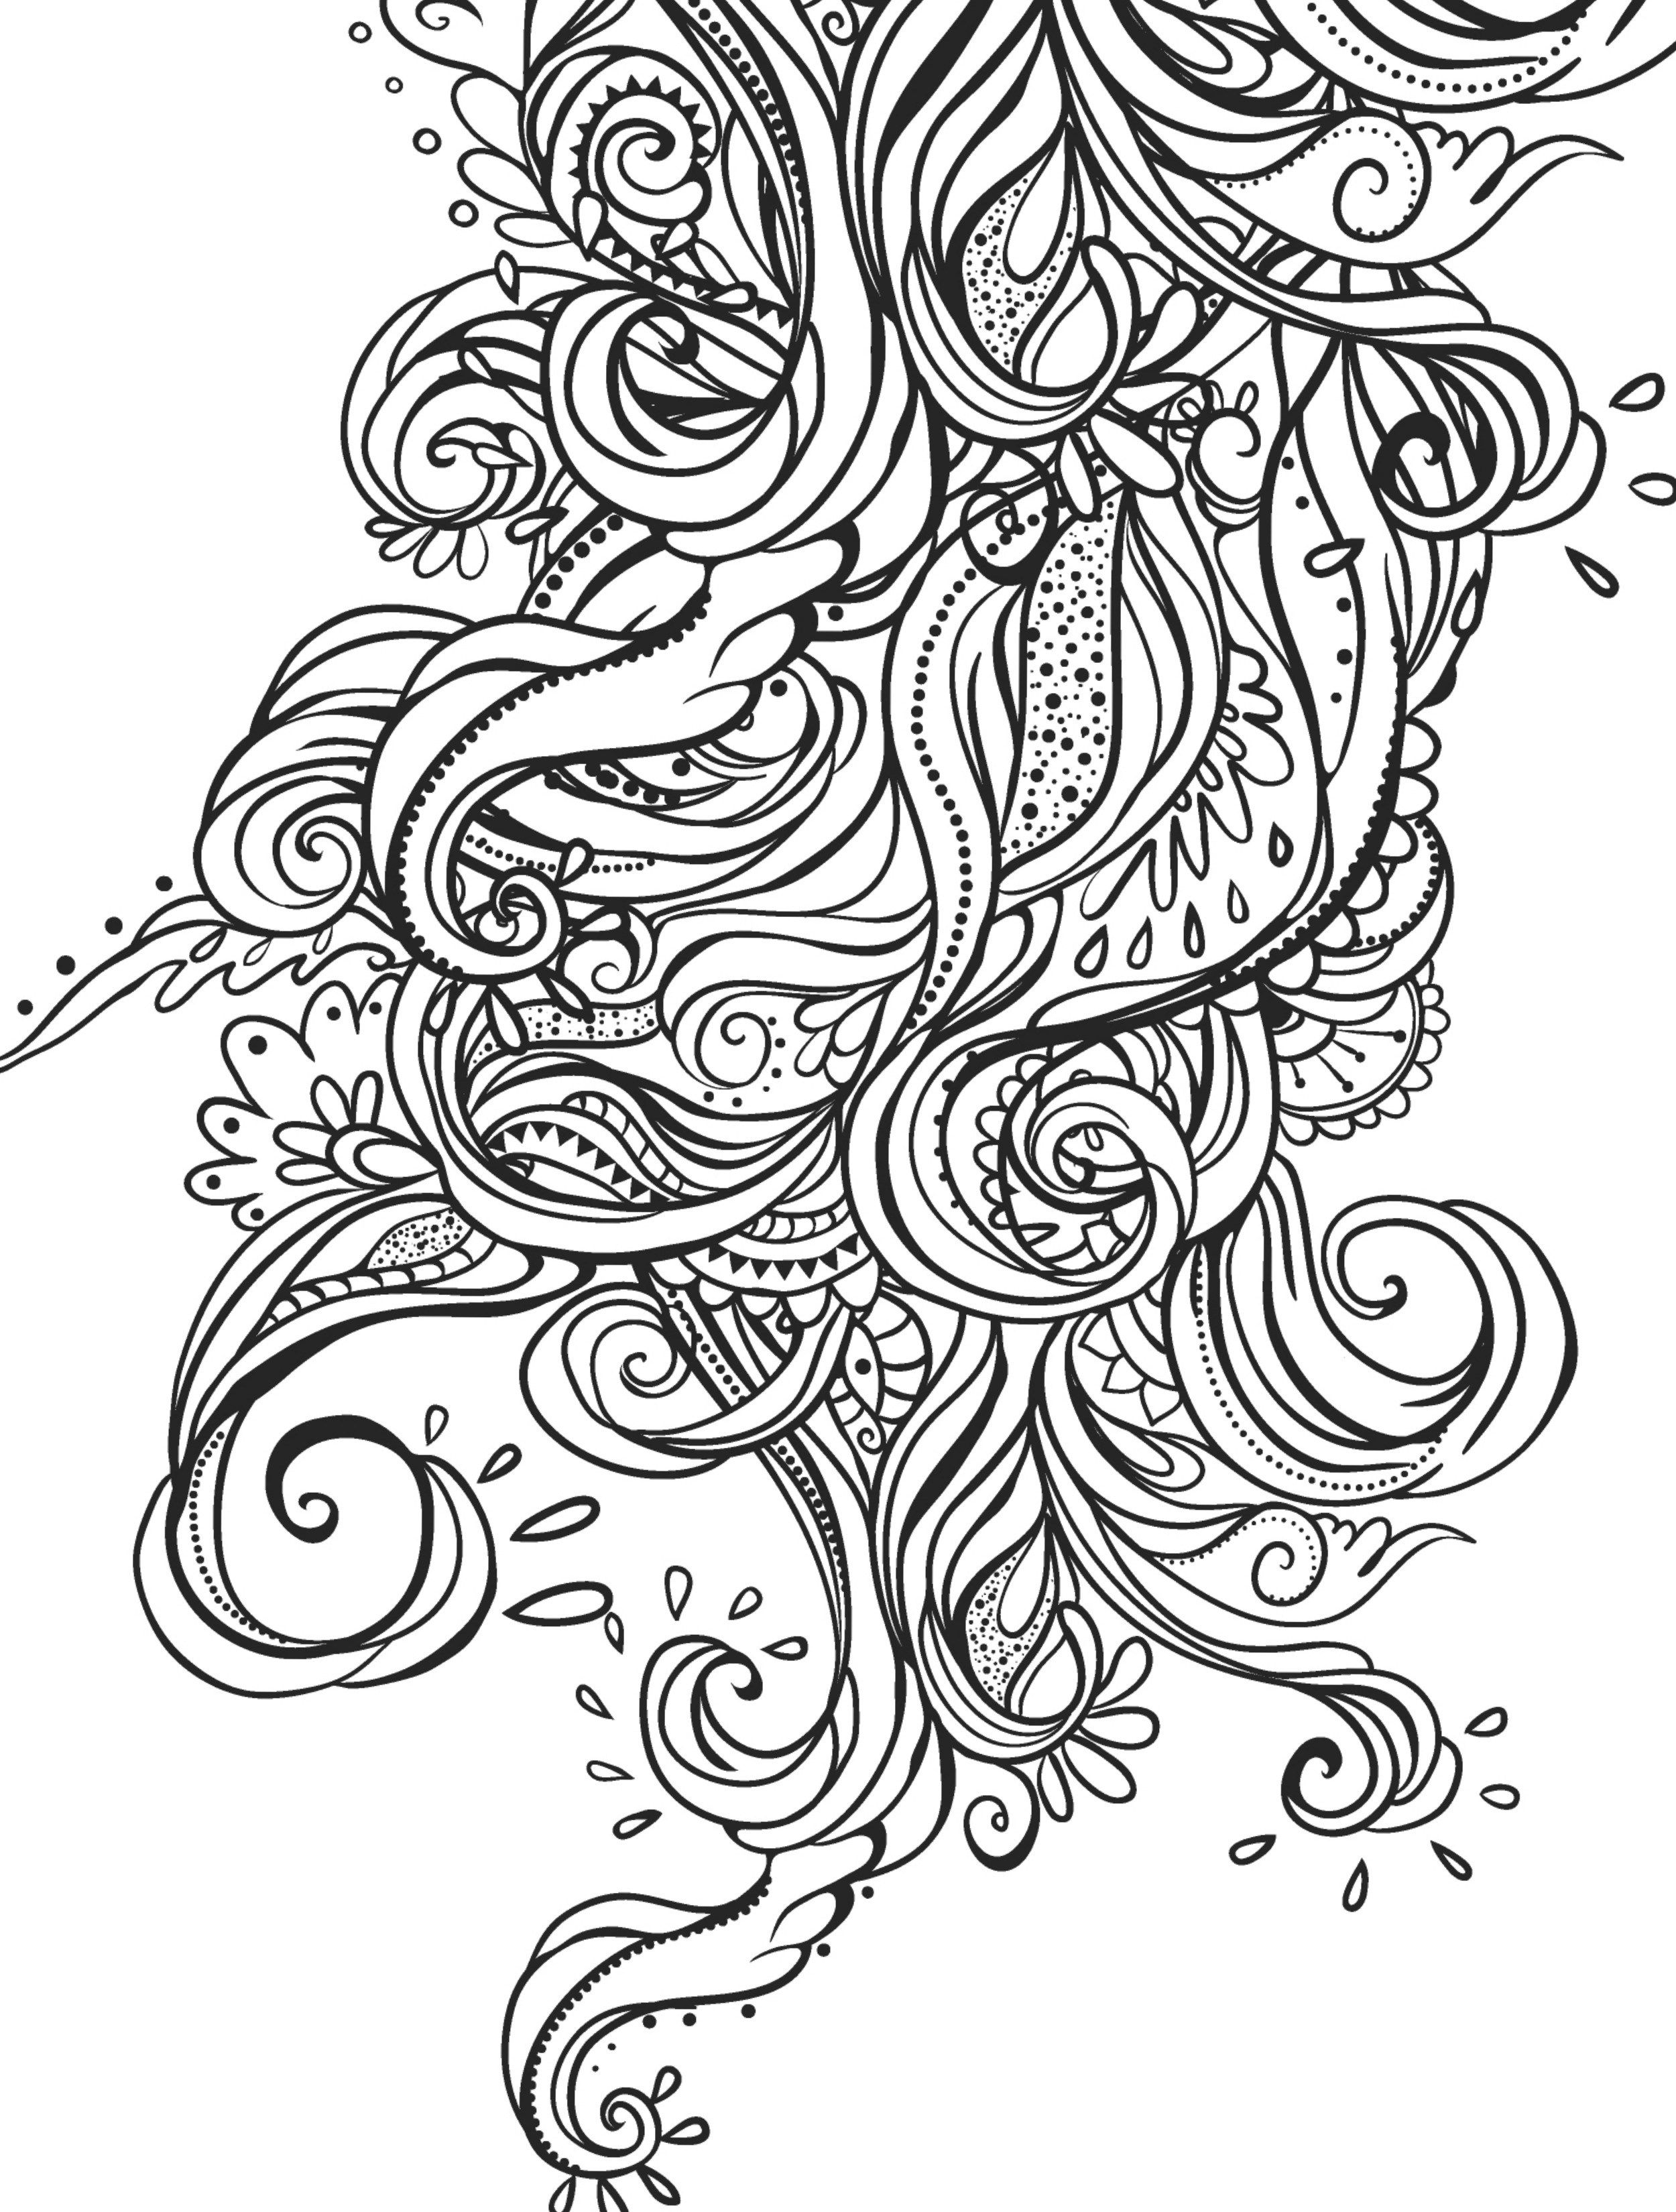 Genial I Got Sucked Into A Vortex Of Looking At Pretty Coloring Pages Through  Which I Found These 15 CRAZY Busy Coloring Pages For Adults That I Wanted  To Print.